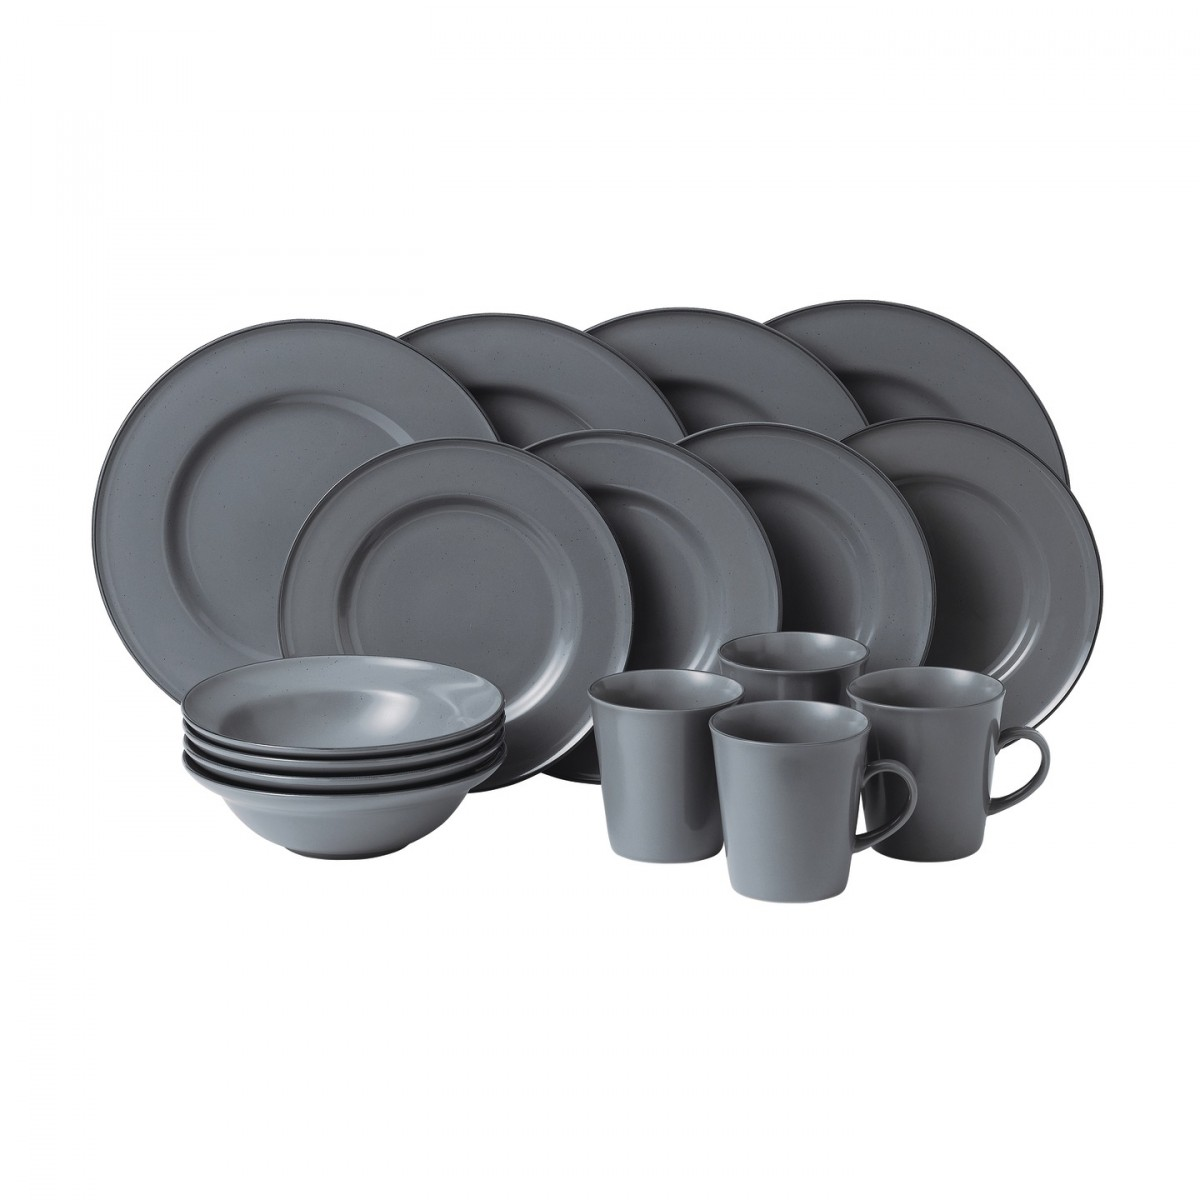 Gordon Ramsay Union Street Café Dinnerware 16pc Box Set | Grey